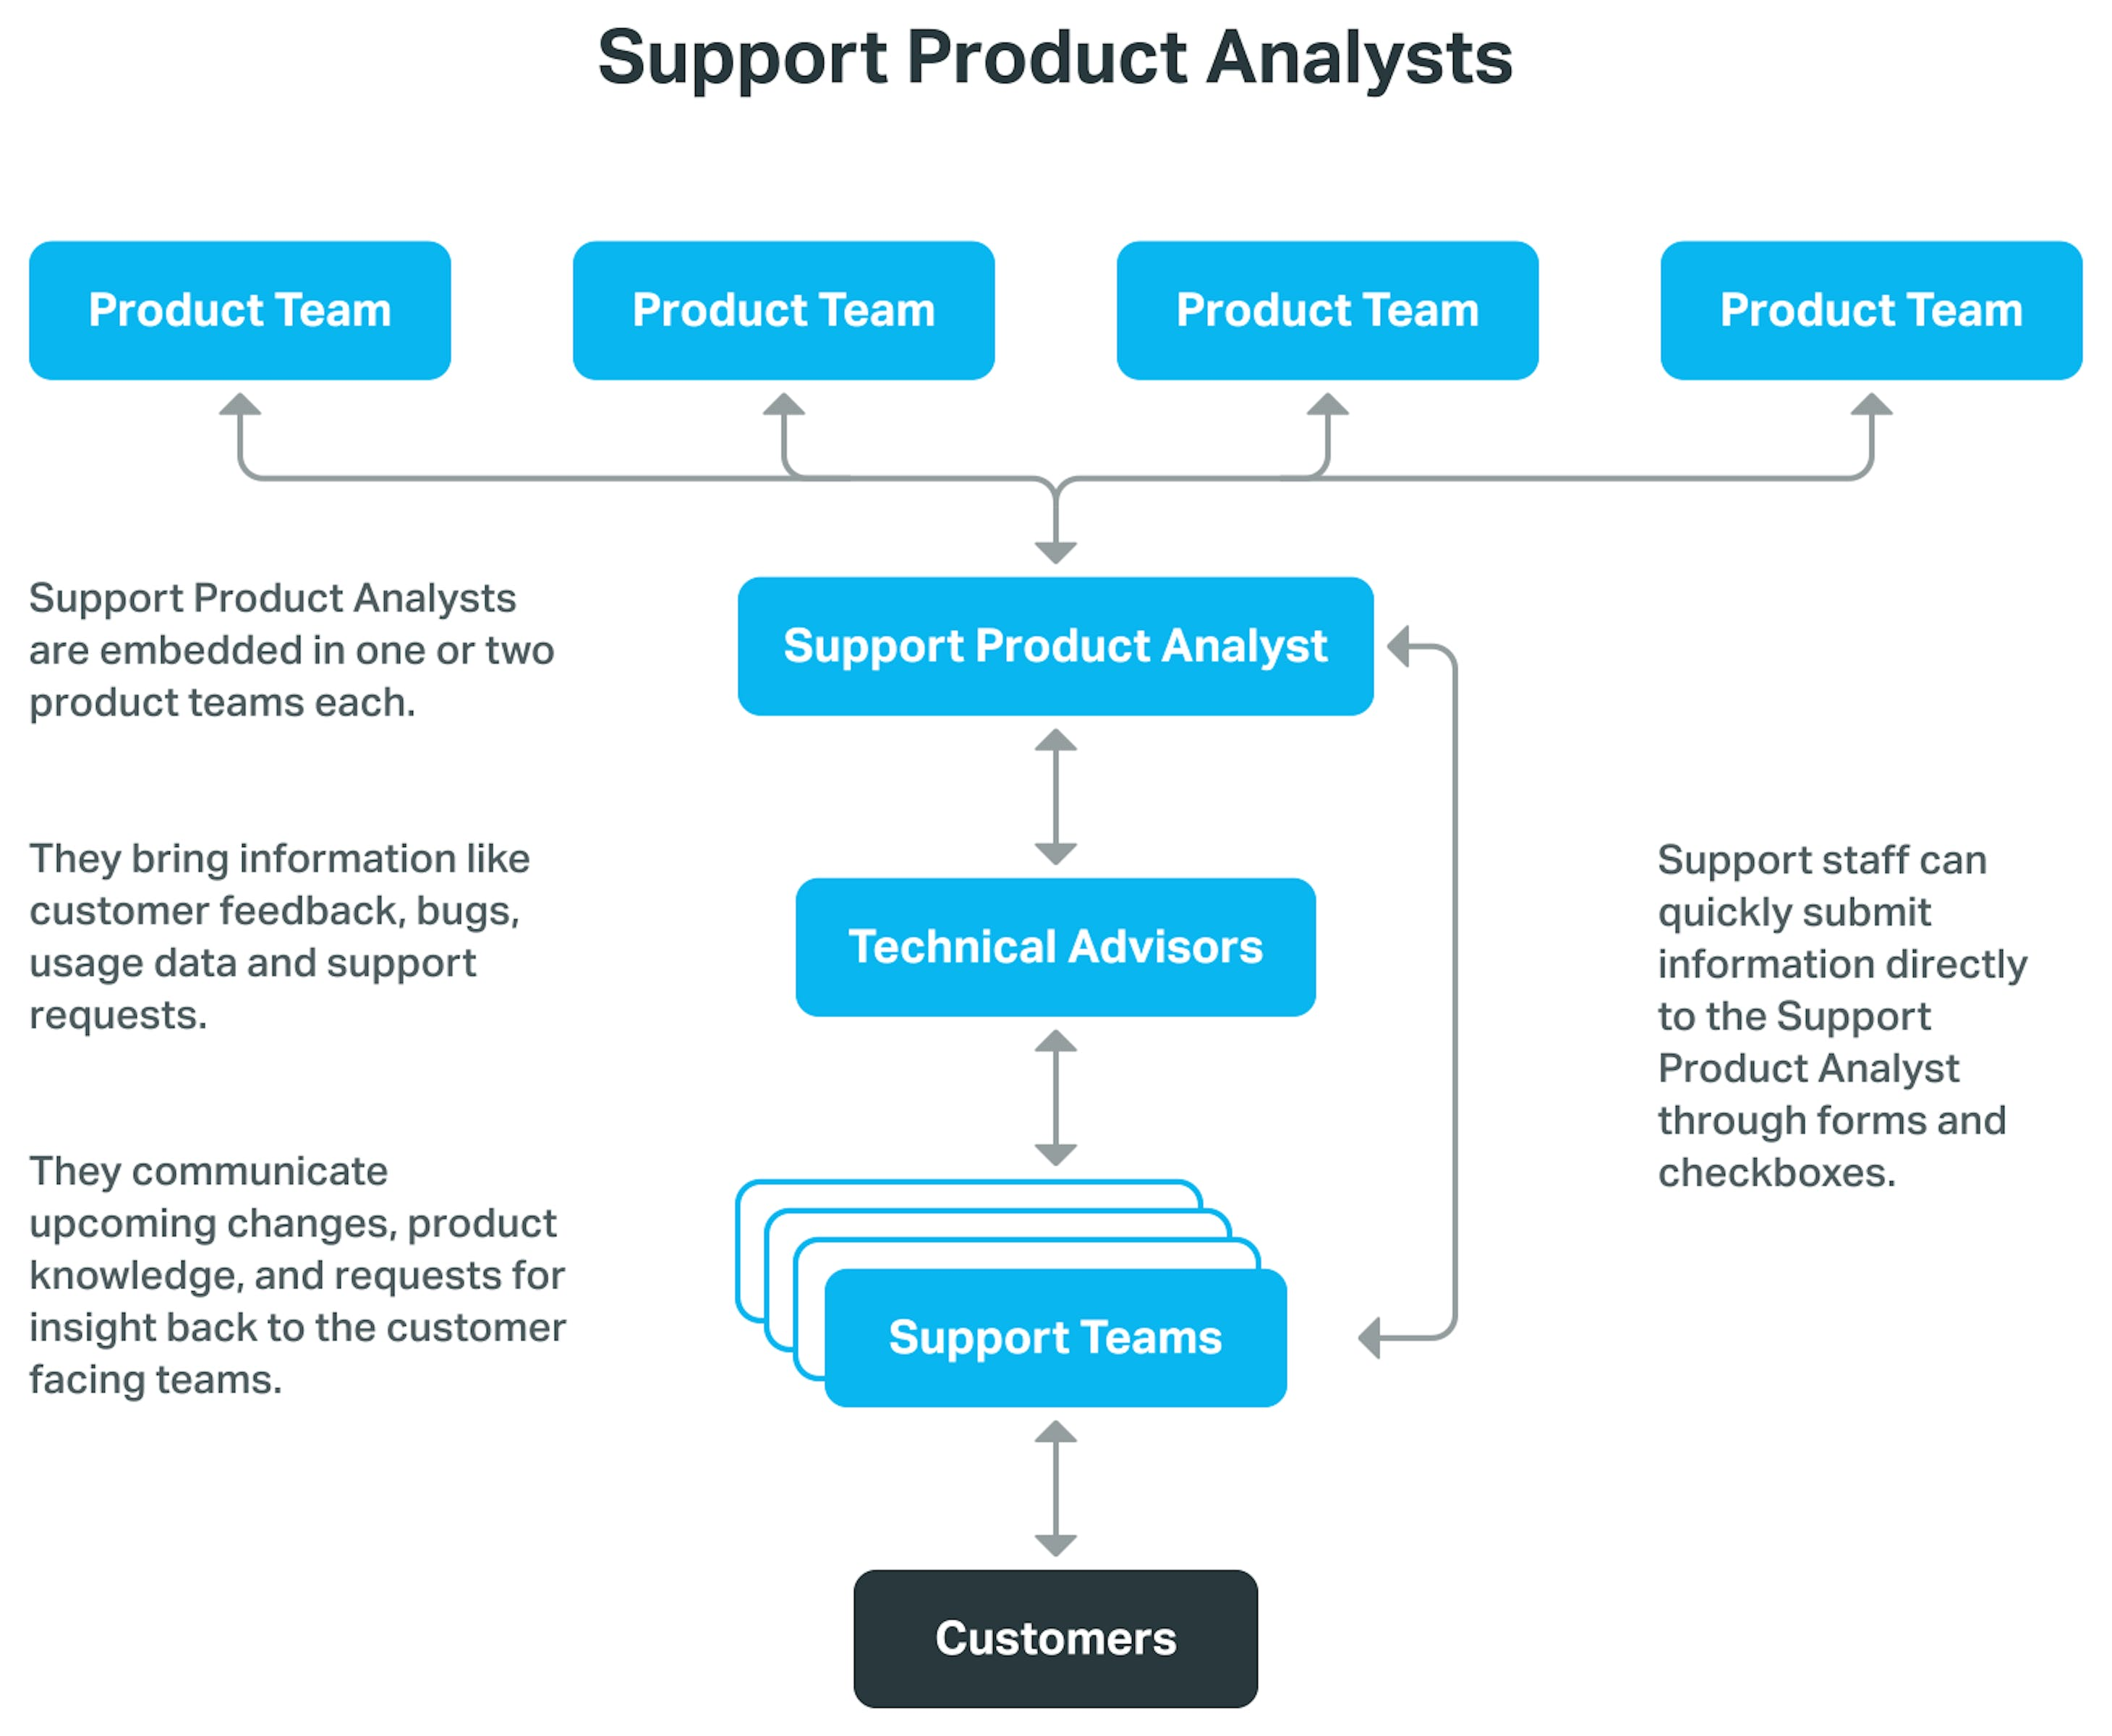 Support Product Analyst